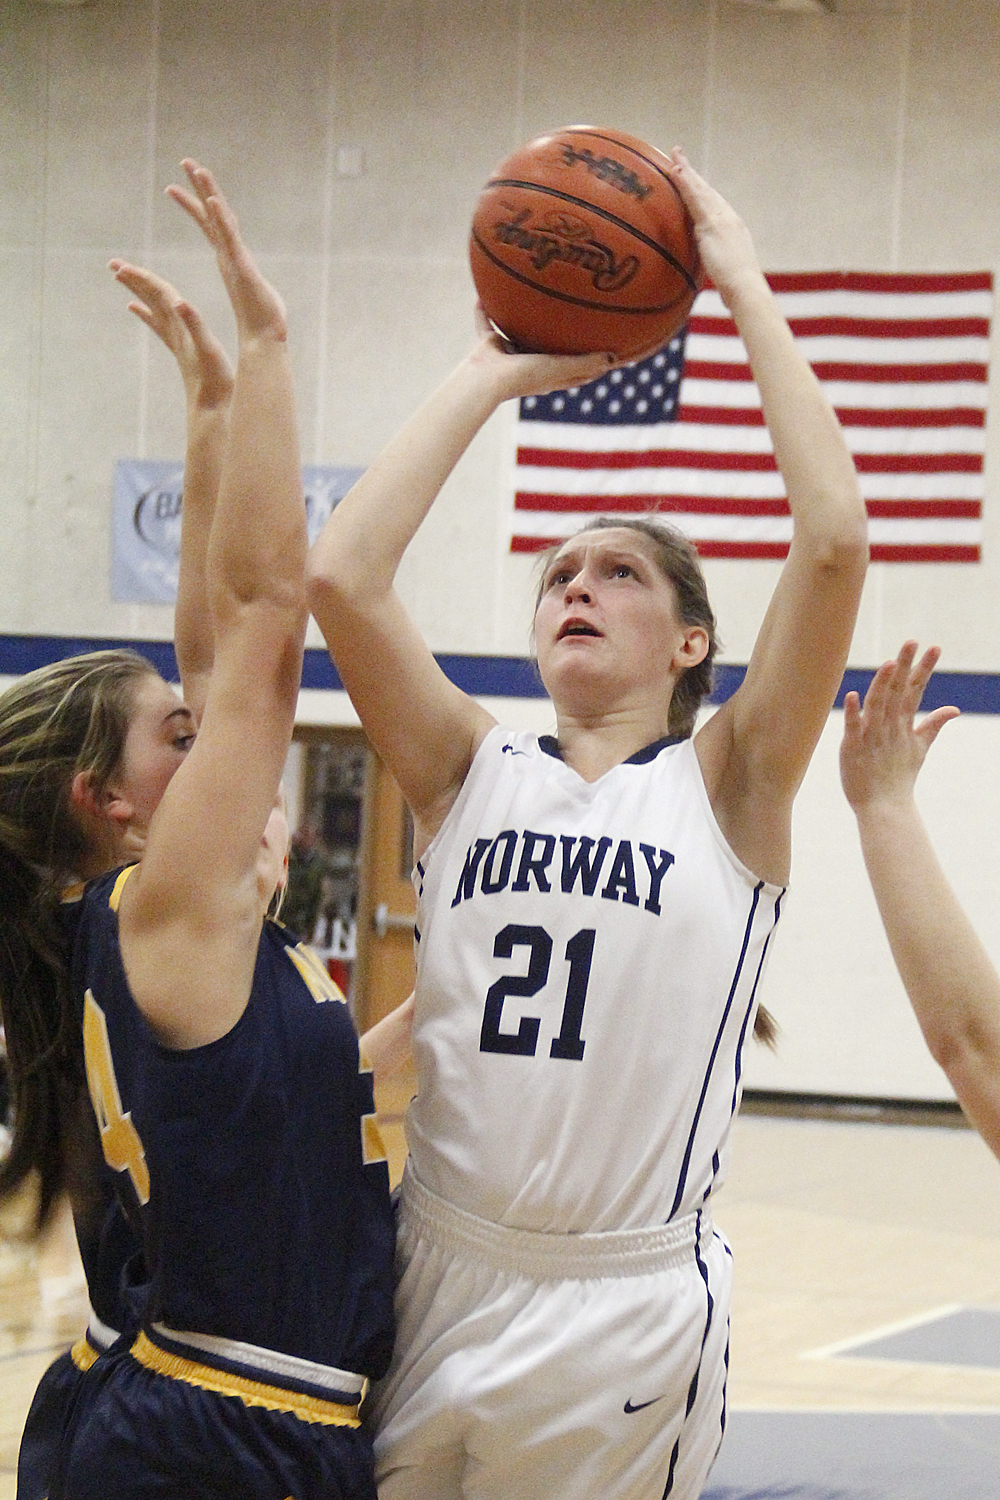 Cofield named AP Class C player of the year | News, Sports ...